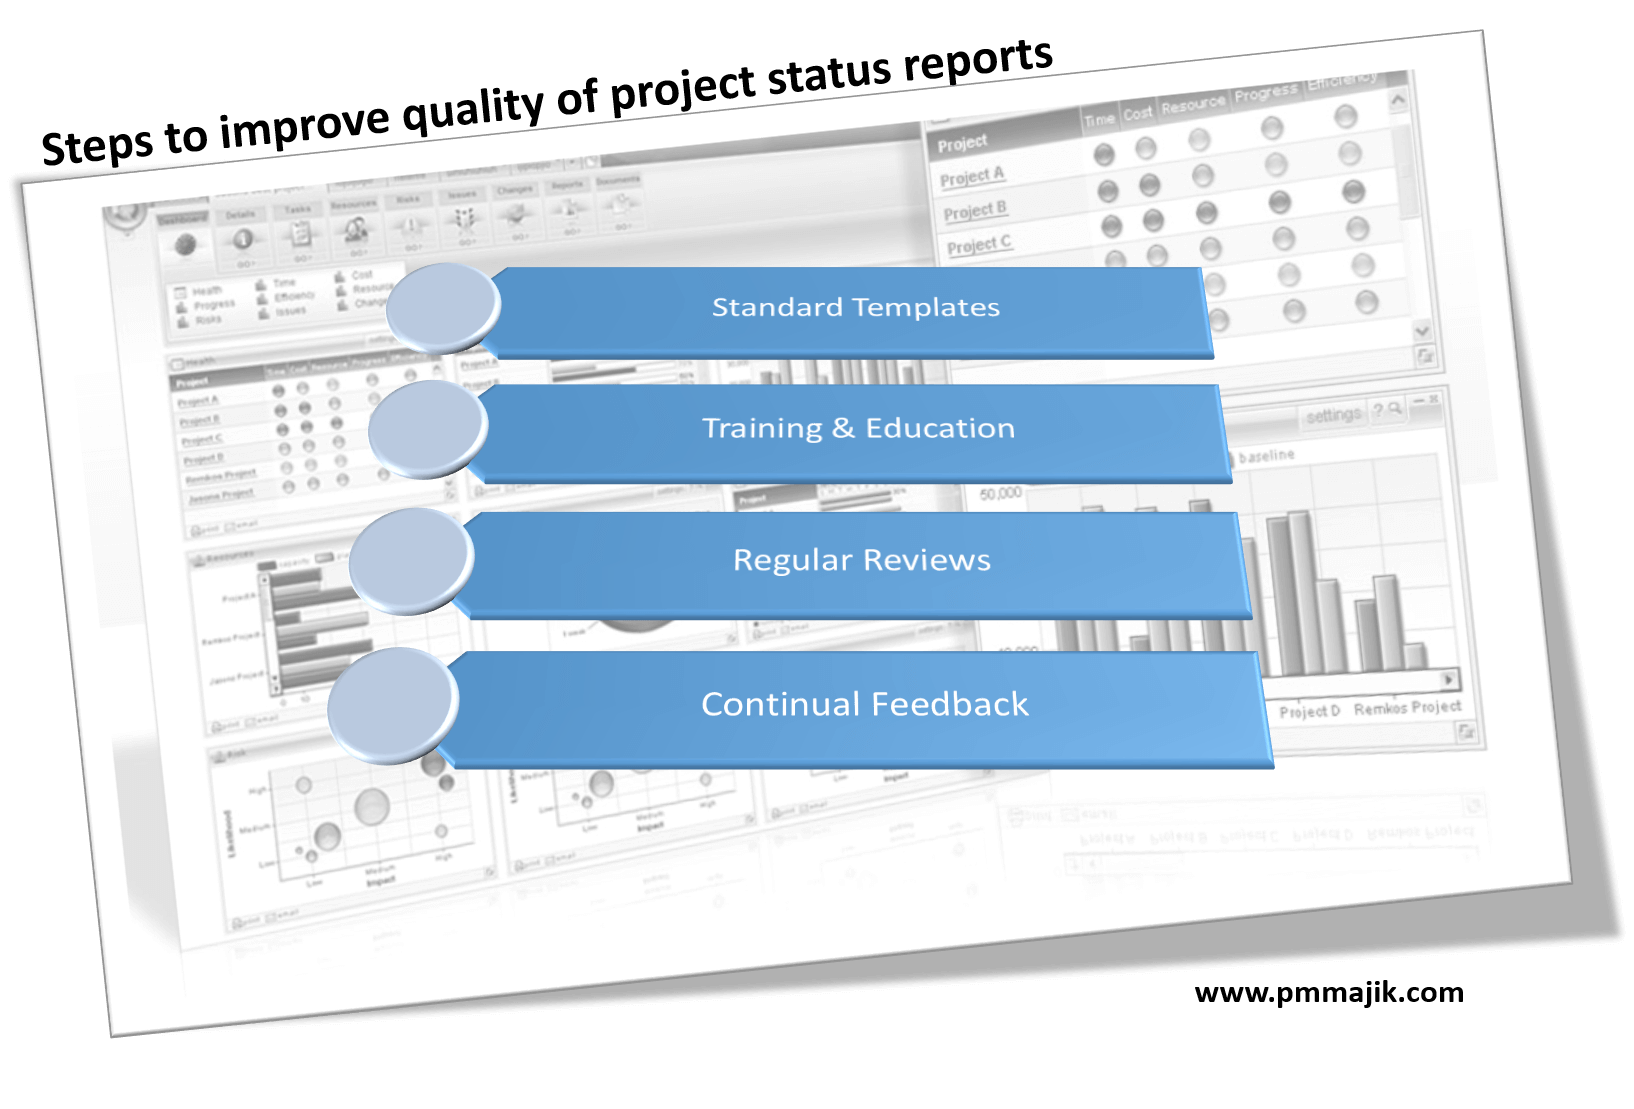 Steps to improve project status reporting